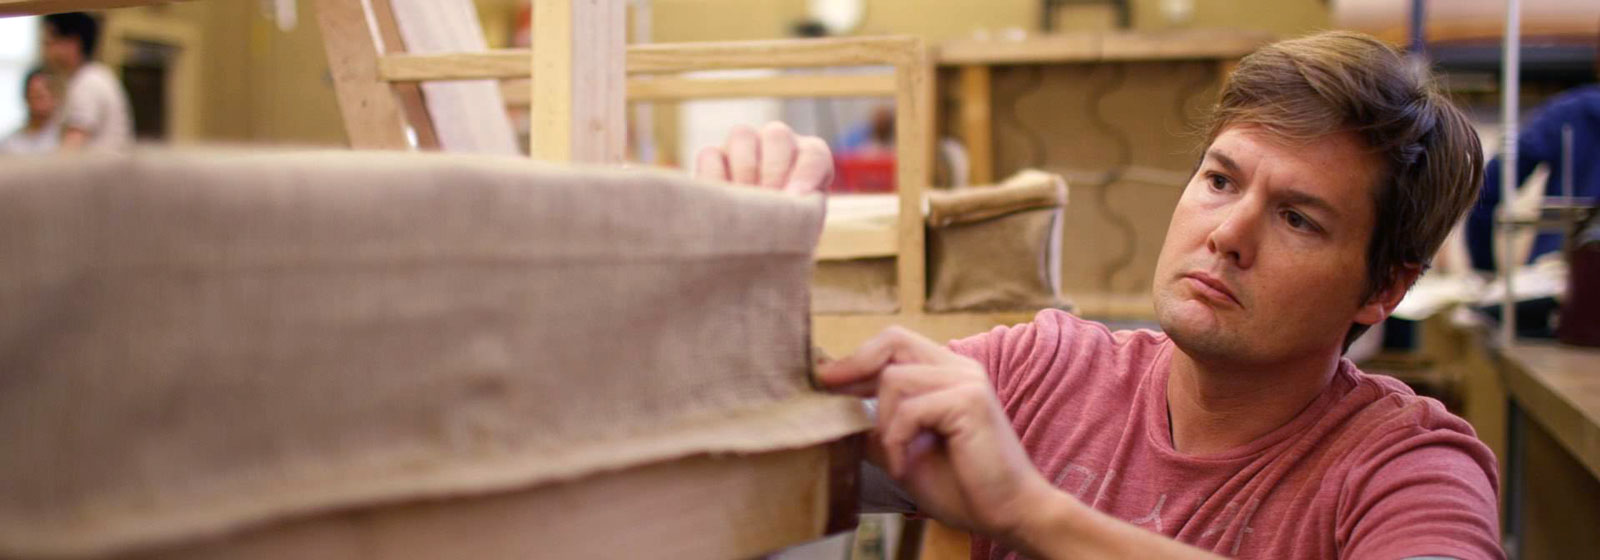 Student examining upholstery on chair